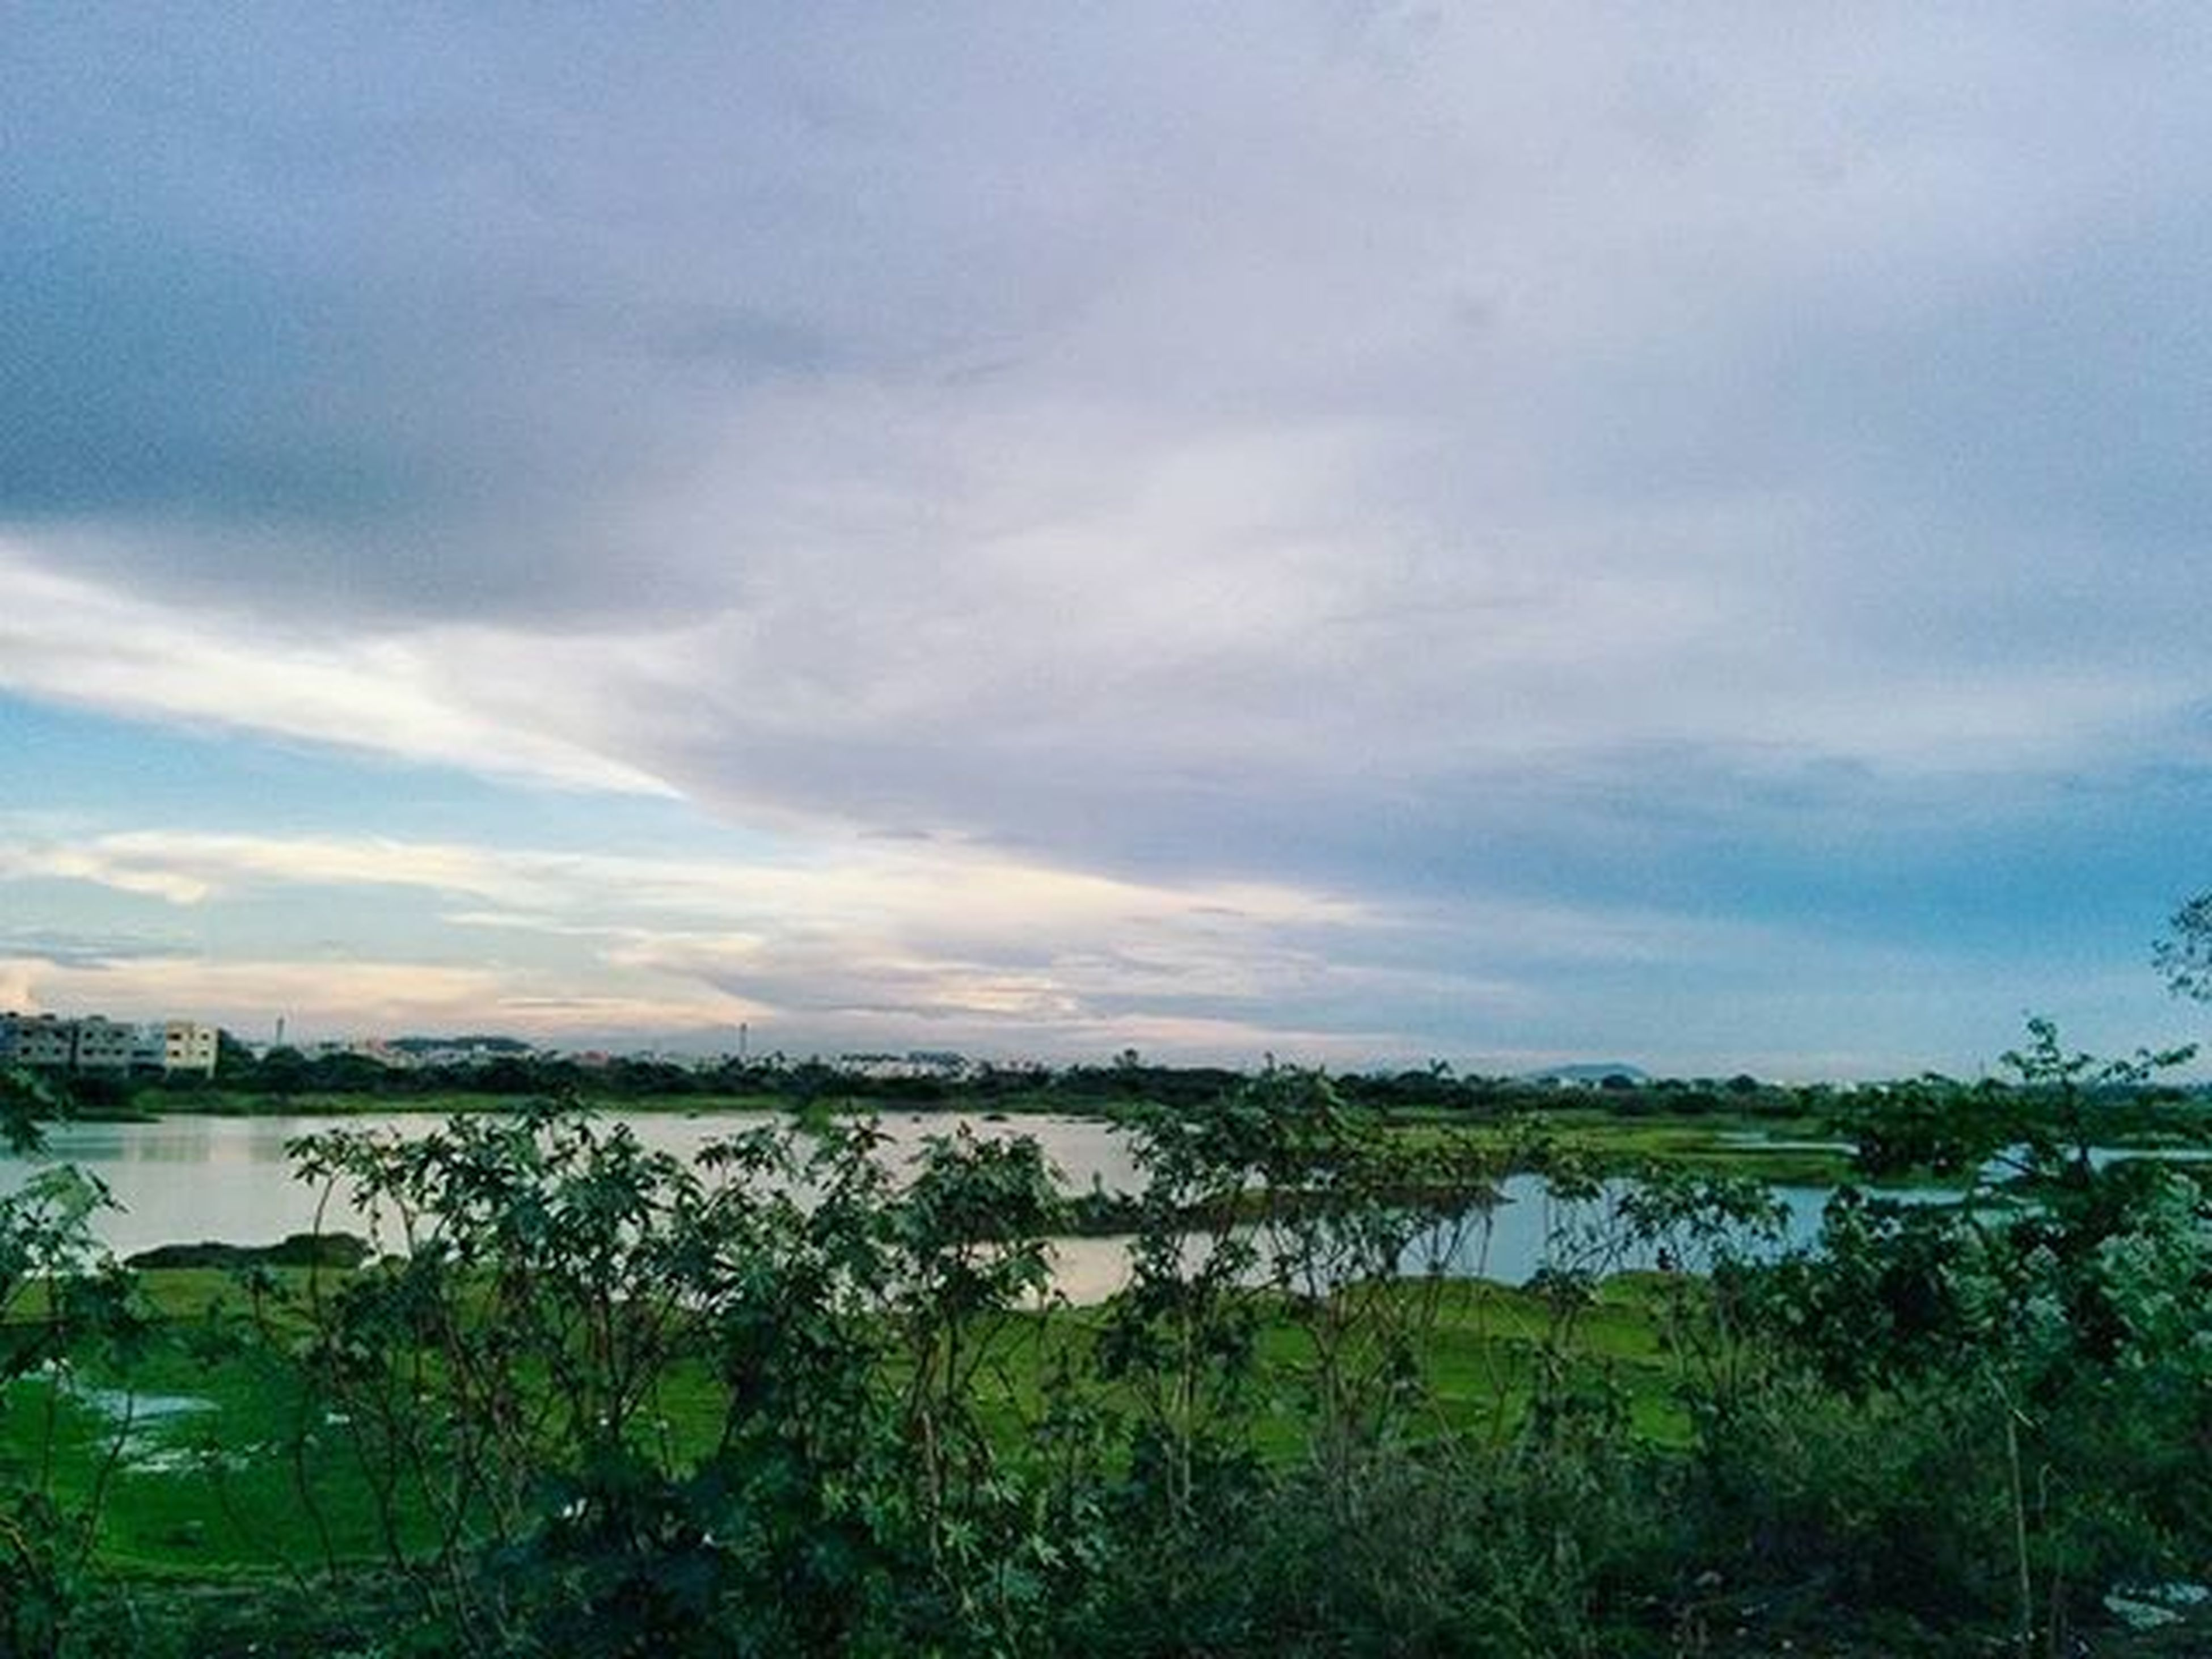 water, sky, tranquil scene, tranquility, lake, cloud - sky, scenics, beauty in nature, grass, nature, plant, cloudy, cloud, growth, river, idyllic, reflection, lakeshore, tree, no people